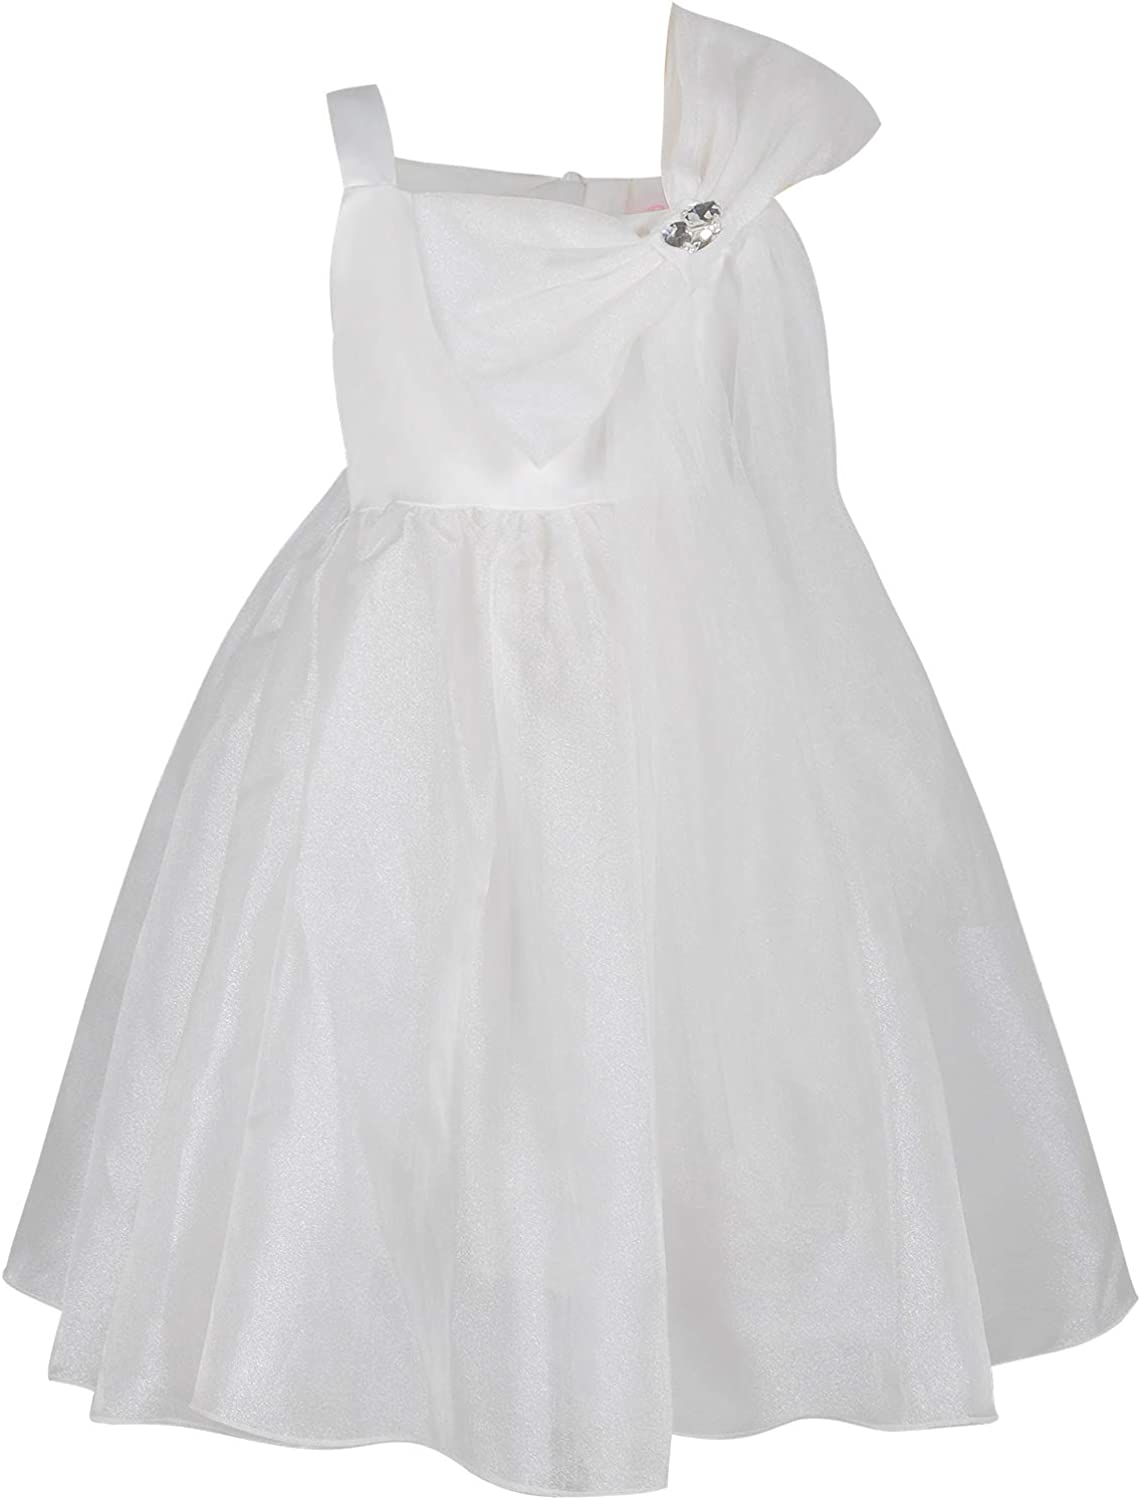 Bonny Billy Big New item Girl's Choice Sparkle Fo Party Tulle Bridesmaid Wedding